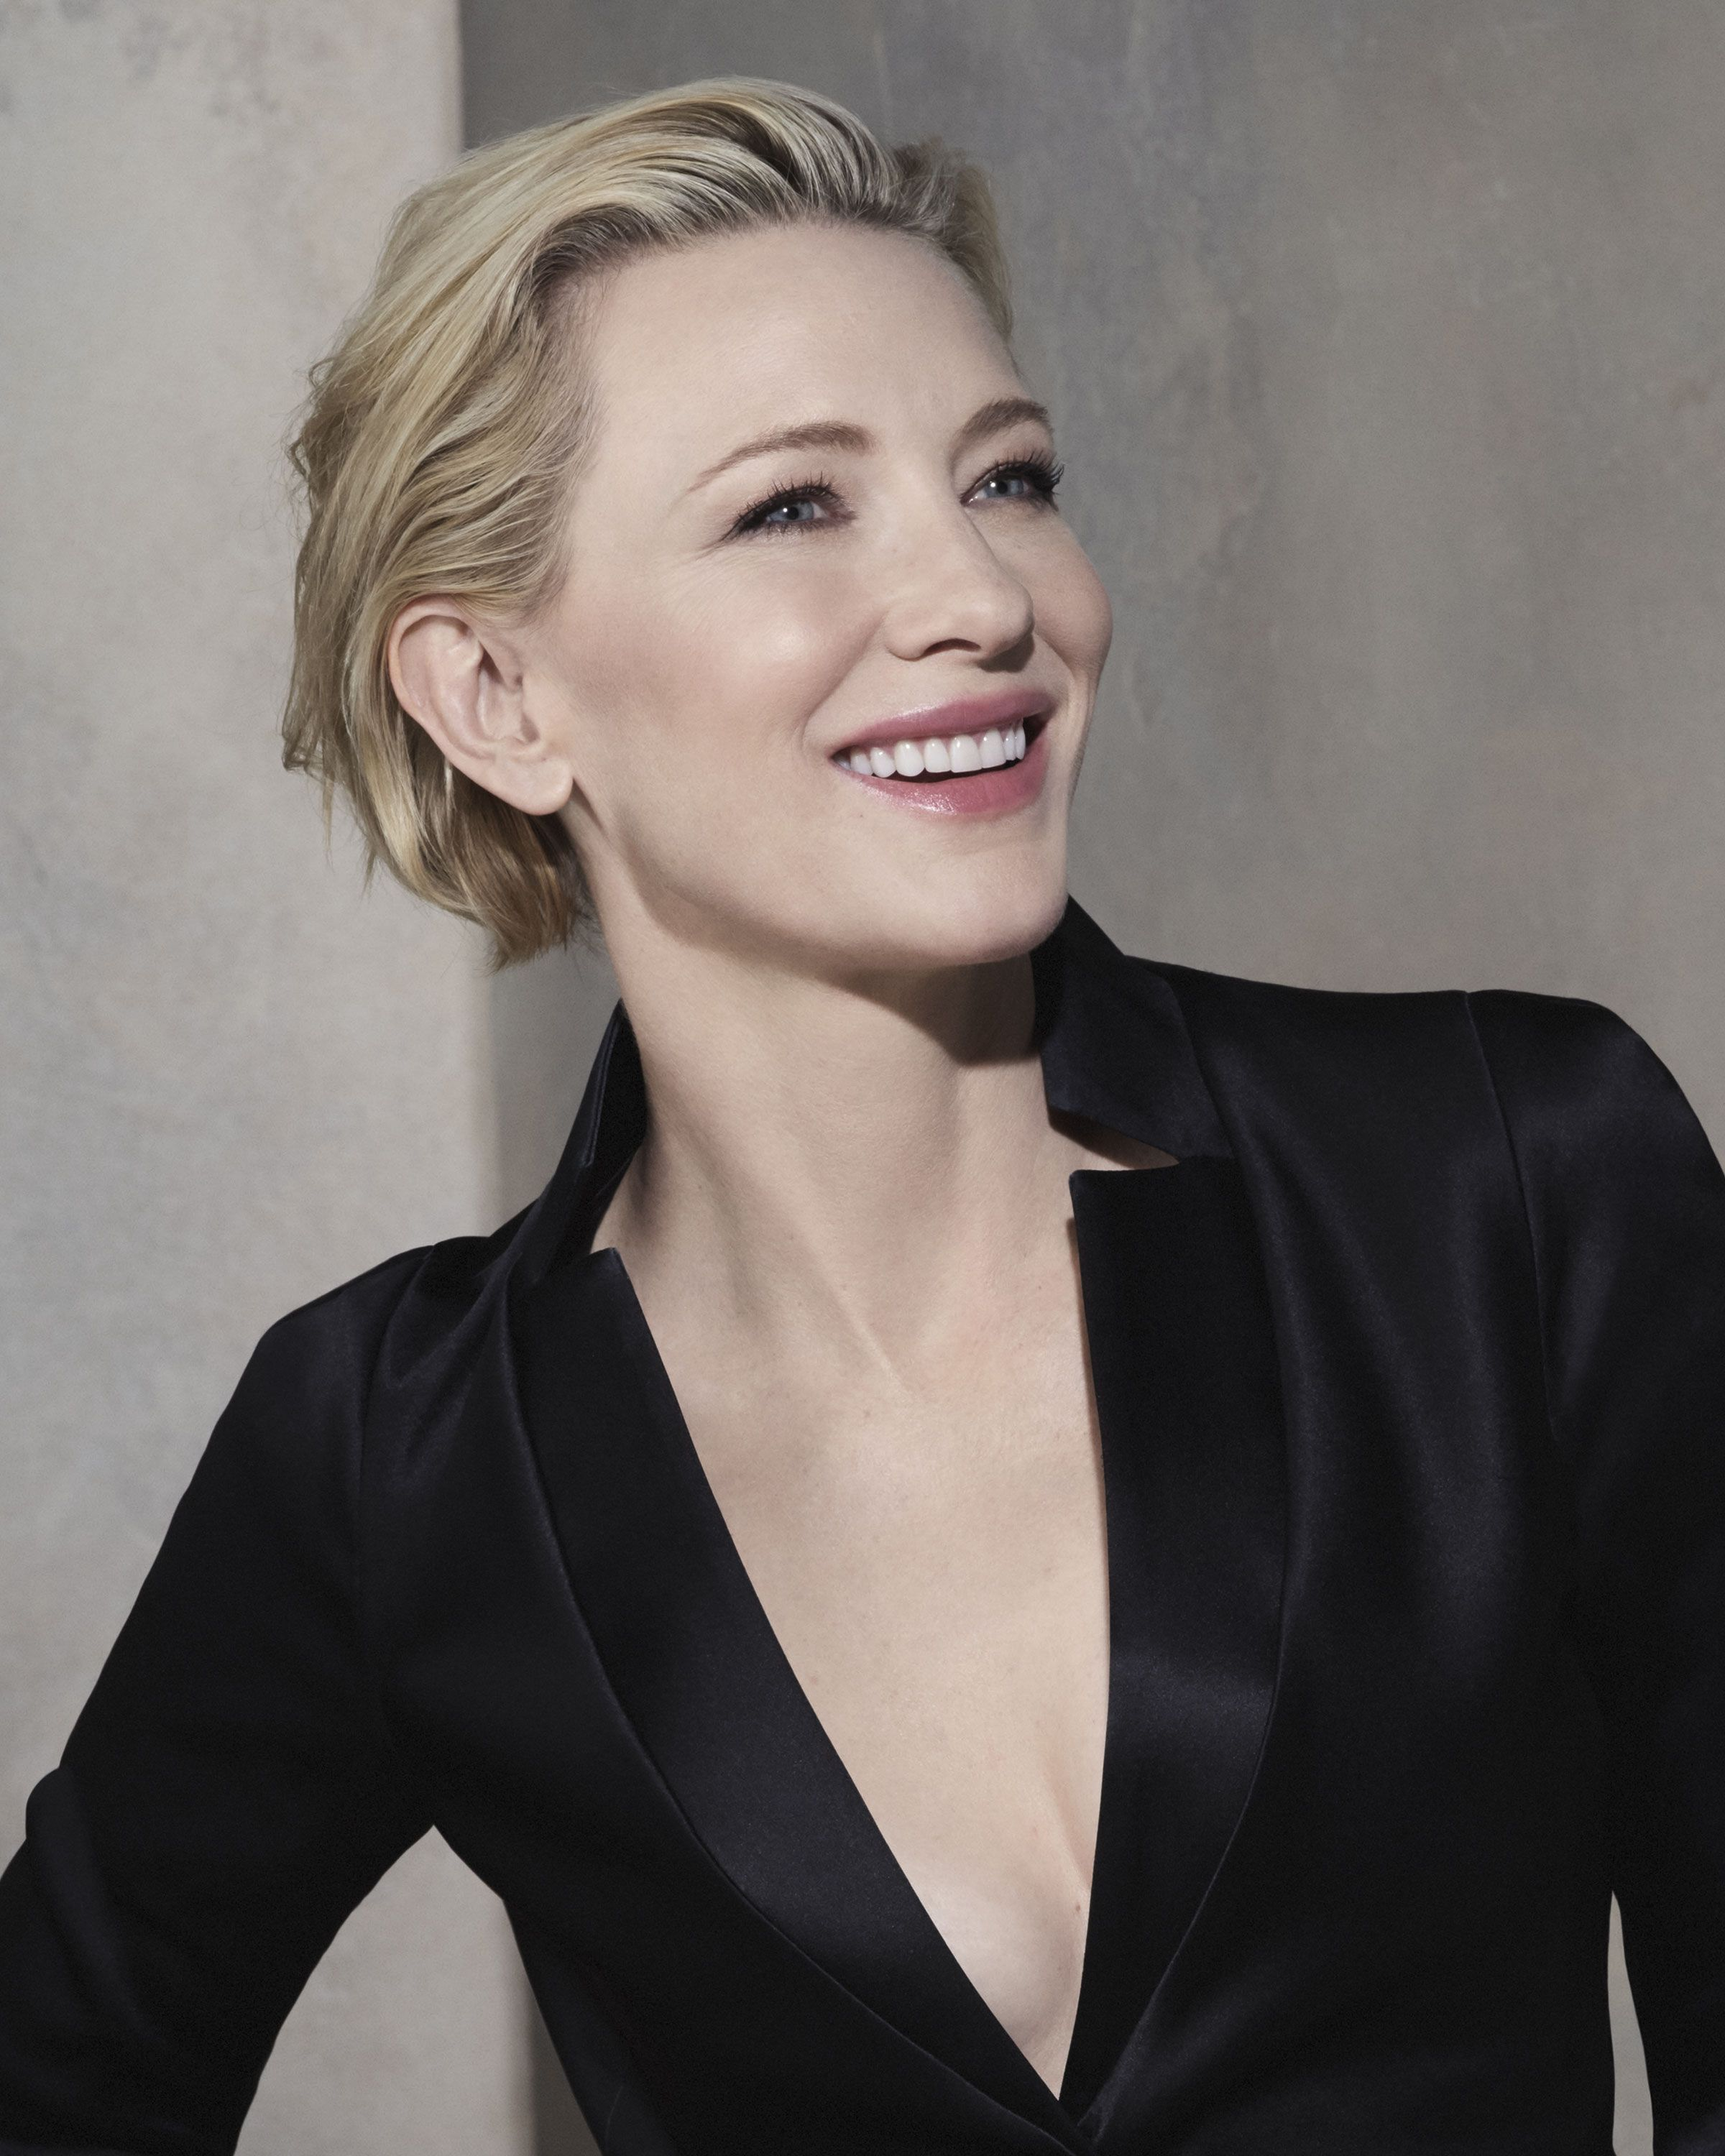 Cate Blanchett Announced As The First Global Beauty Ambassador For Giorgio Armani